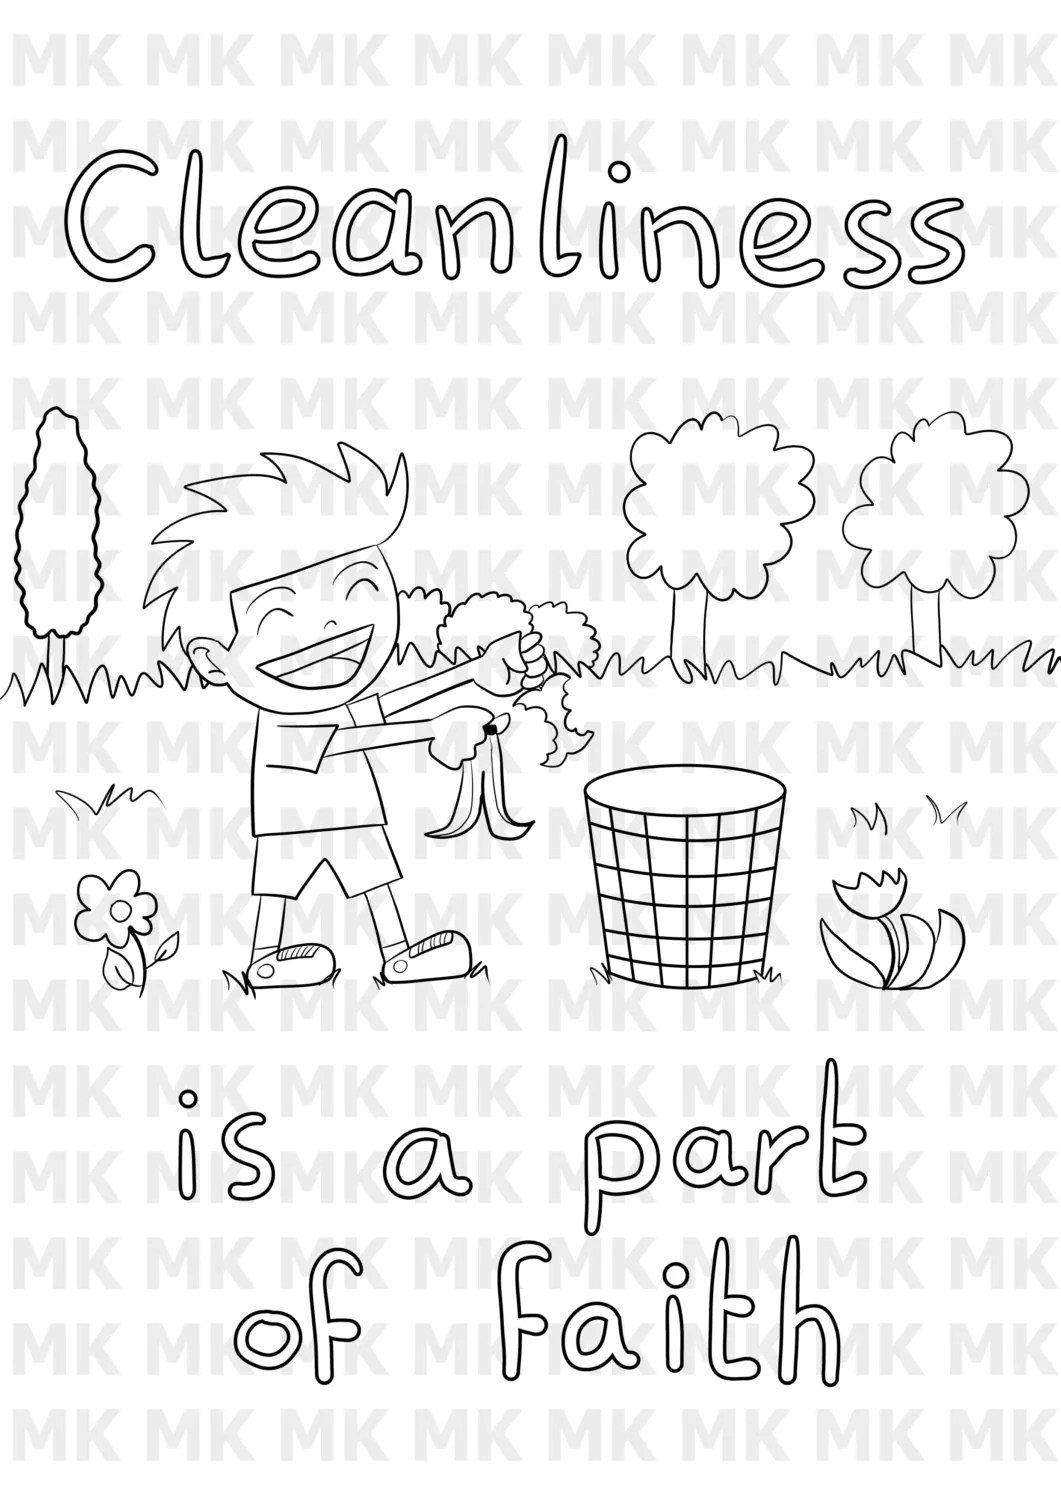 Printable Muslim Child coloring: Cleanliness by MuslimChildArt